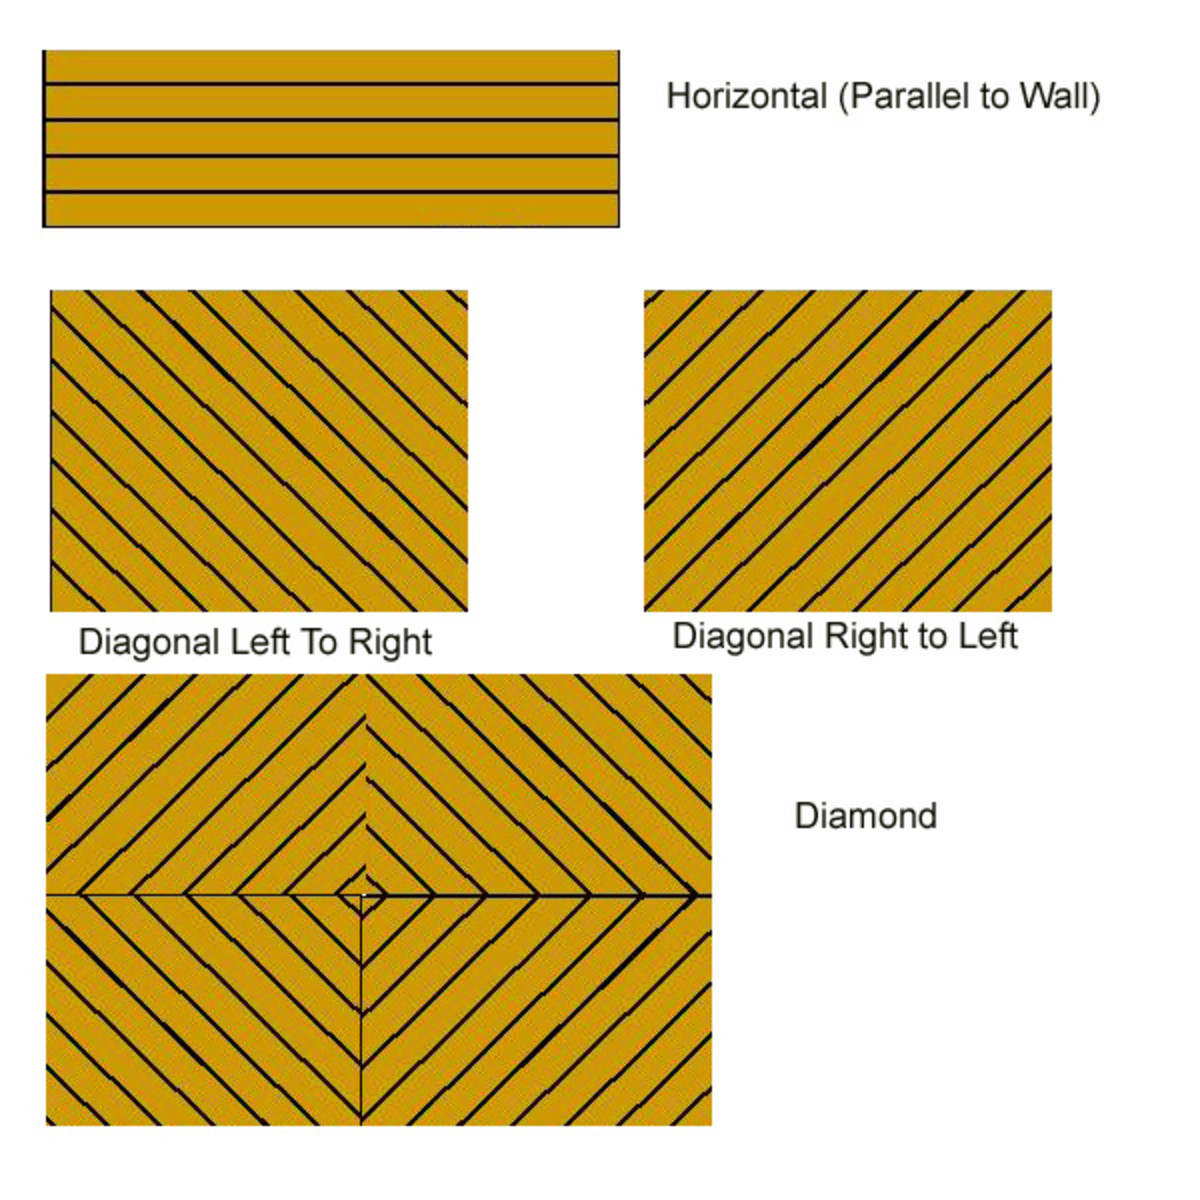 Fig 6. Other deck patterns for joists perpendicular to house